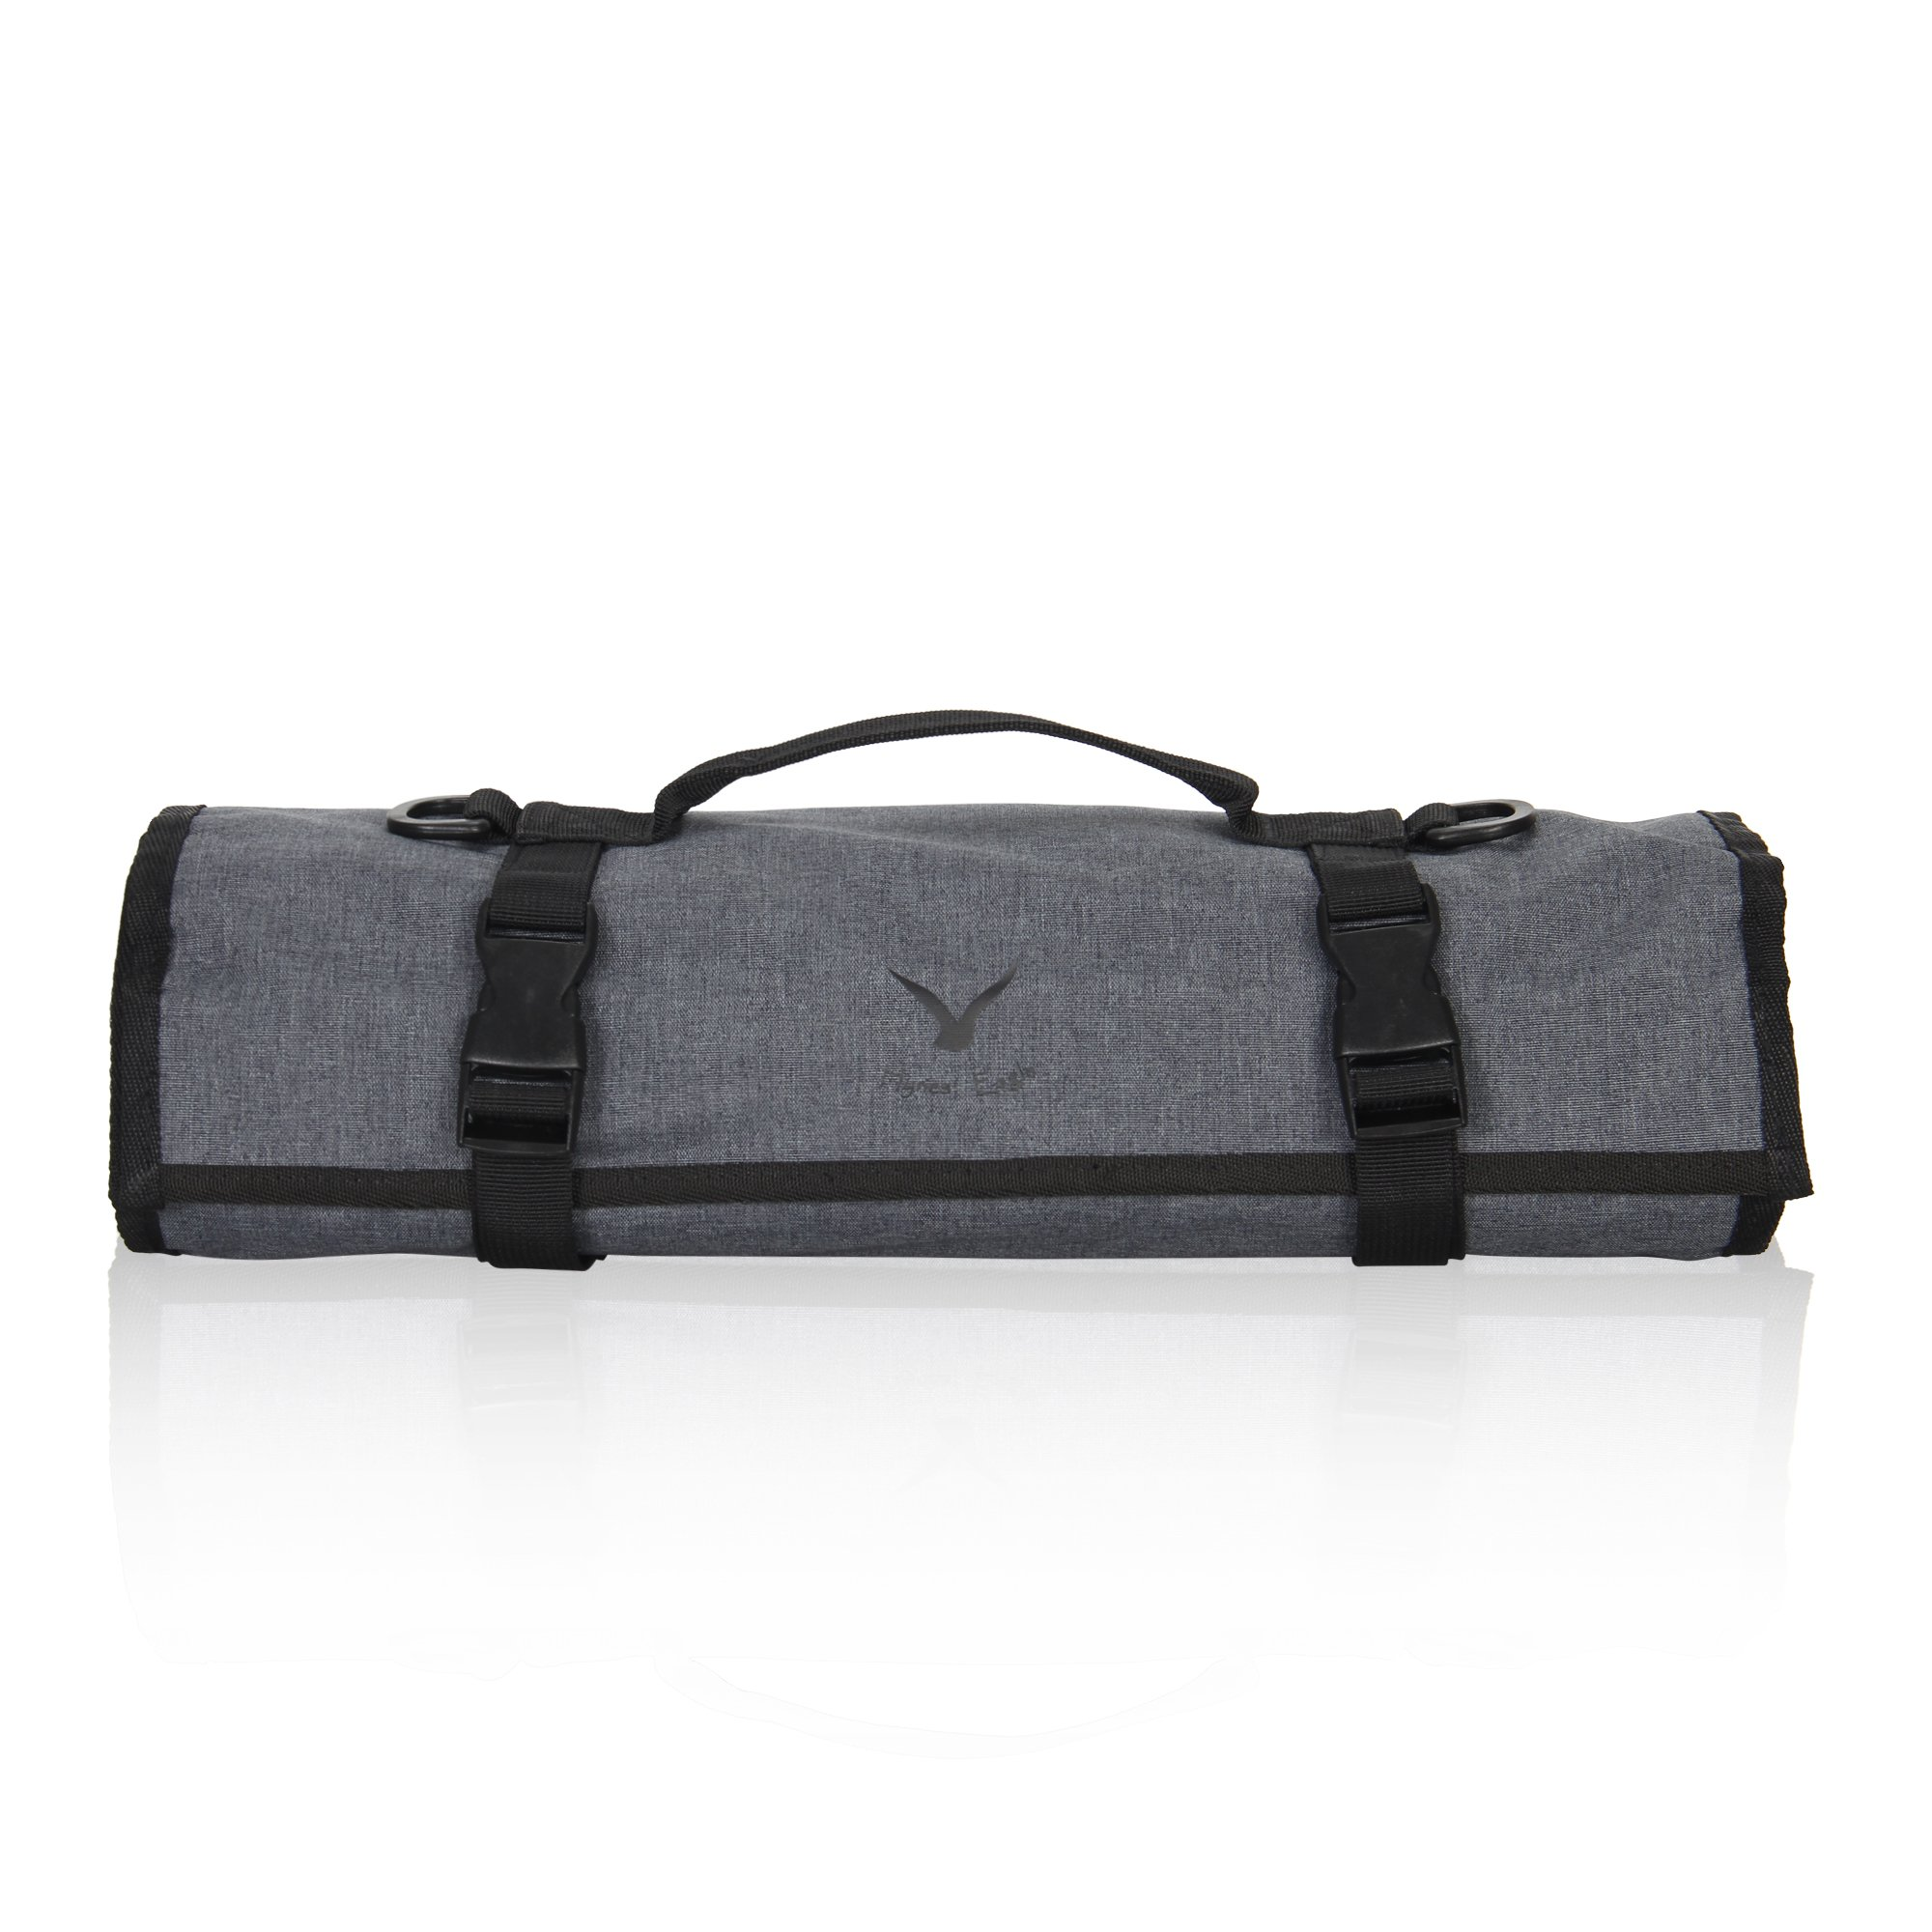 Hynes Eagle Lightweight Roll-Up Travel Bag Portable Compression Cross Body Packing Organizer for Camping Boating Motorcycle Trip Quick Flight, Grey